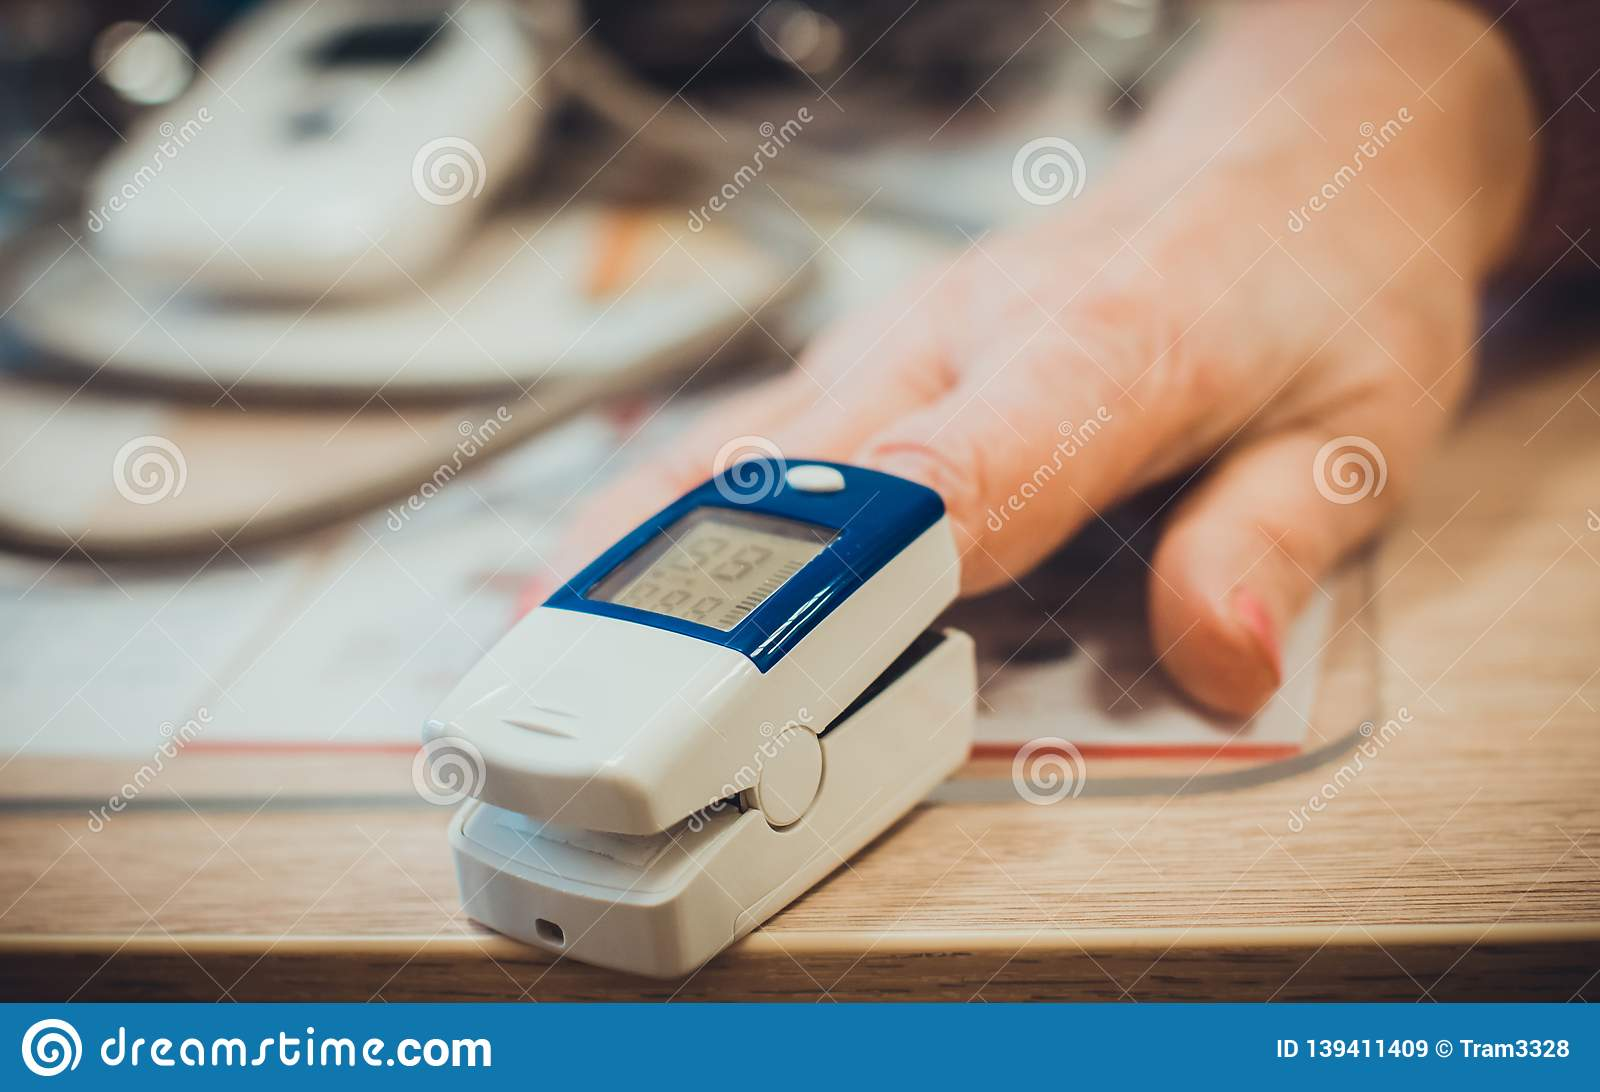 Using Pulse Oximeter On The Hand For Measuring Pulse Closeup